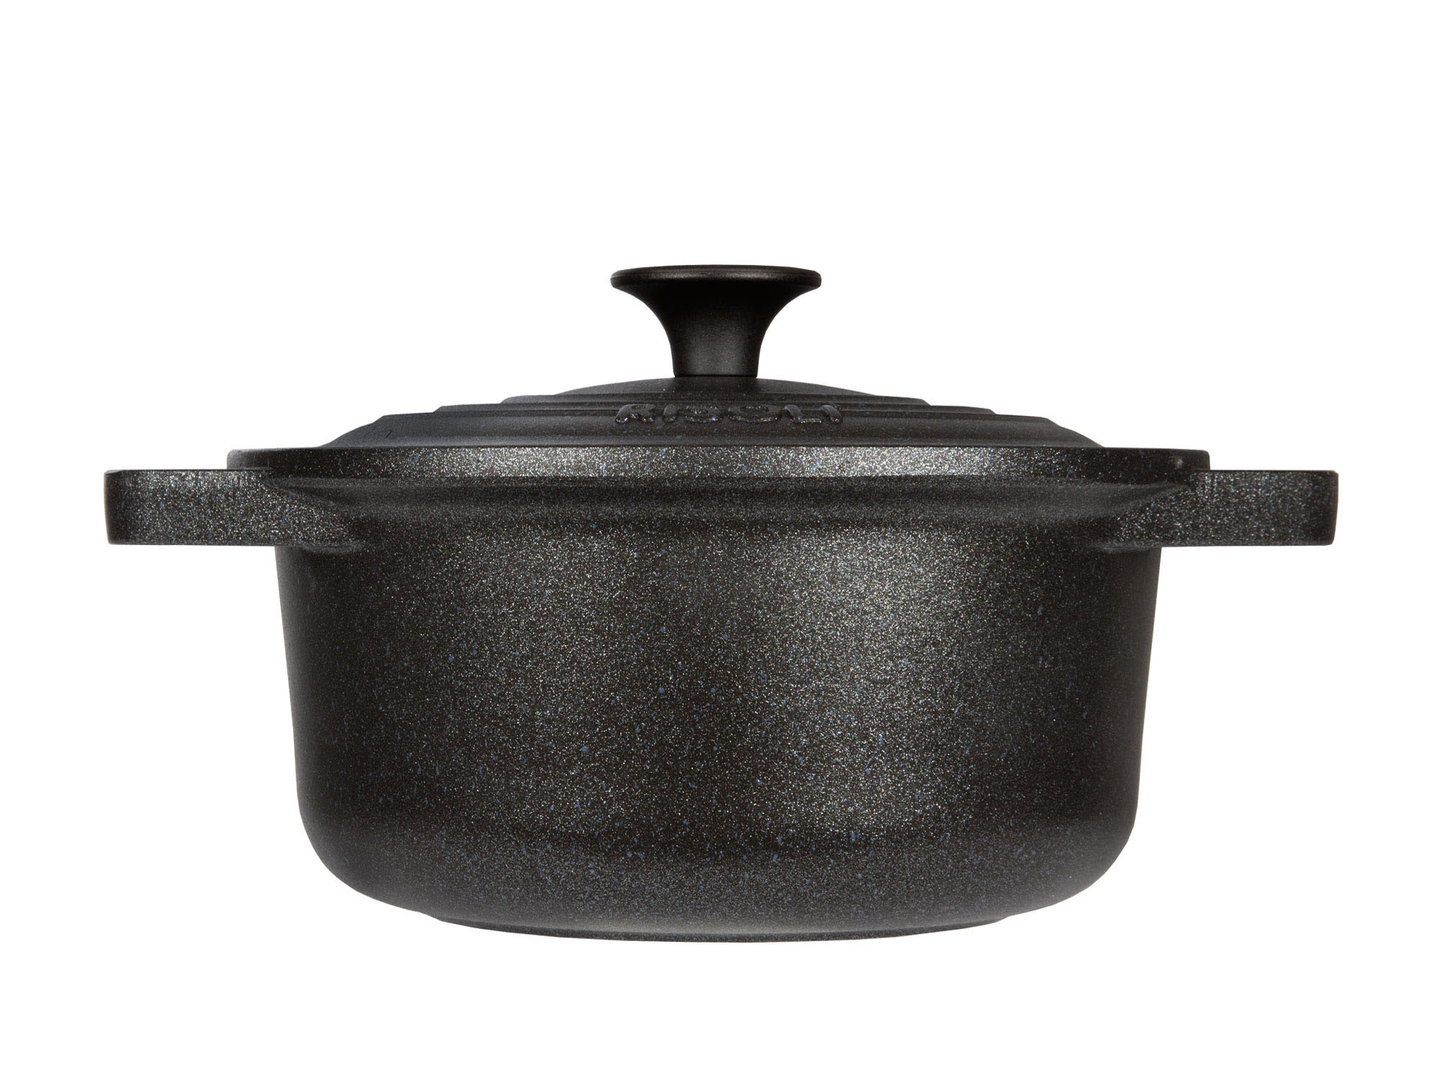 RISOLI cast aluminum casserole LE PIGNATTE 24 cm cocotte round induction with glass lid